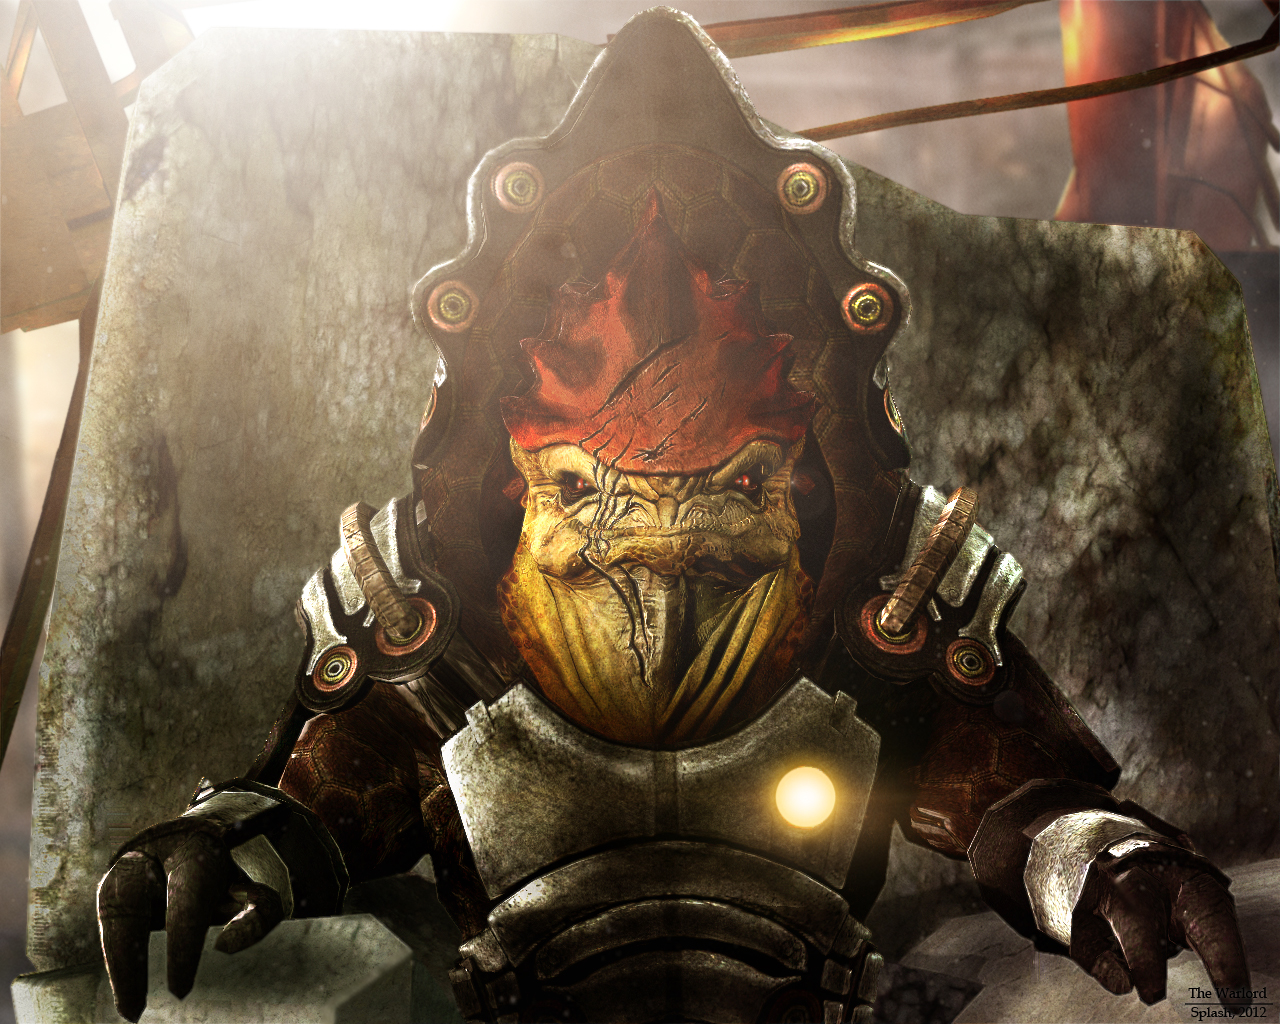 Krogan Empire Mass Effect Fanon Wiki Fandom Powered By Wikia